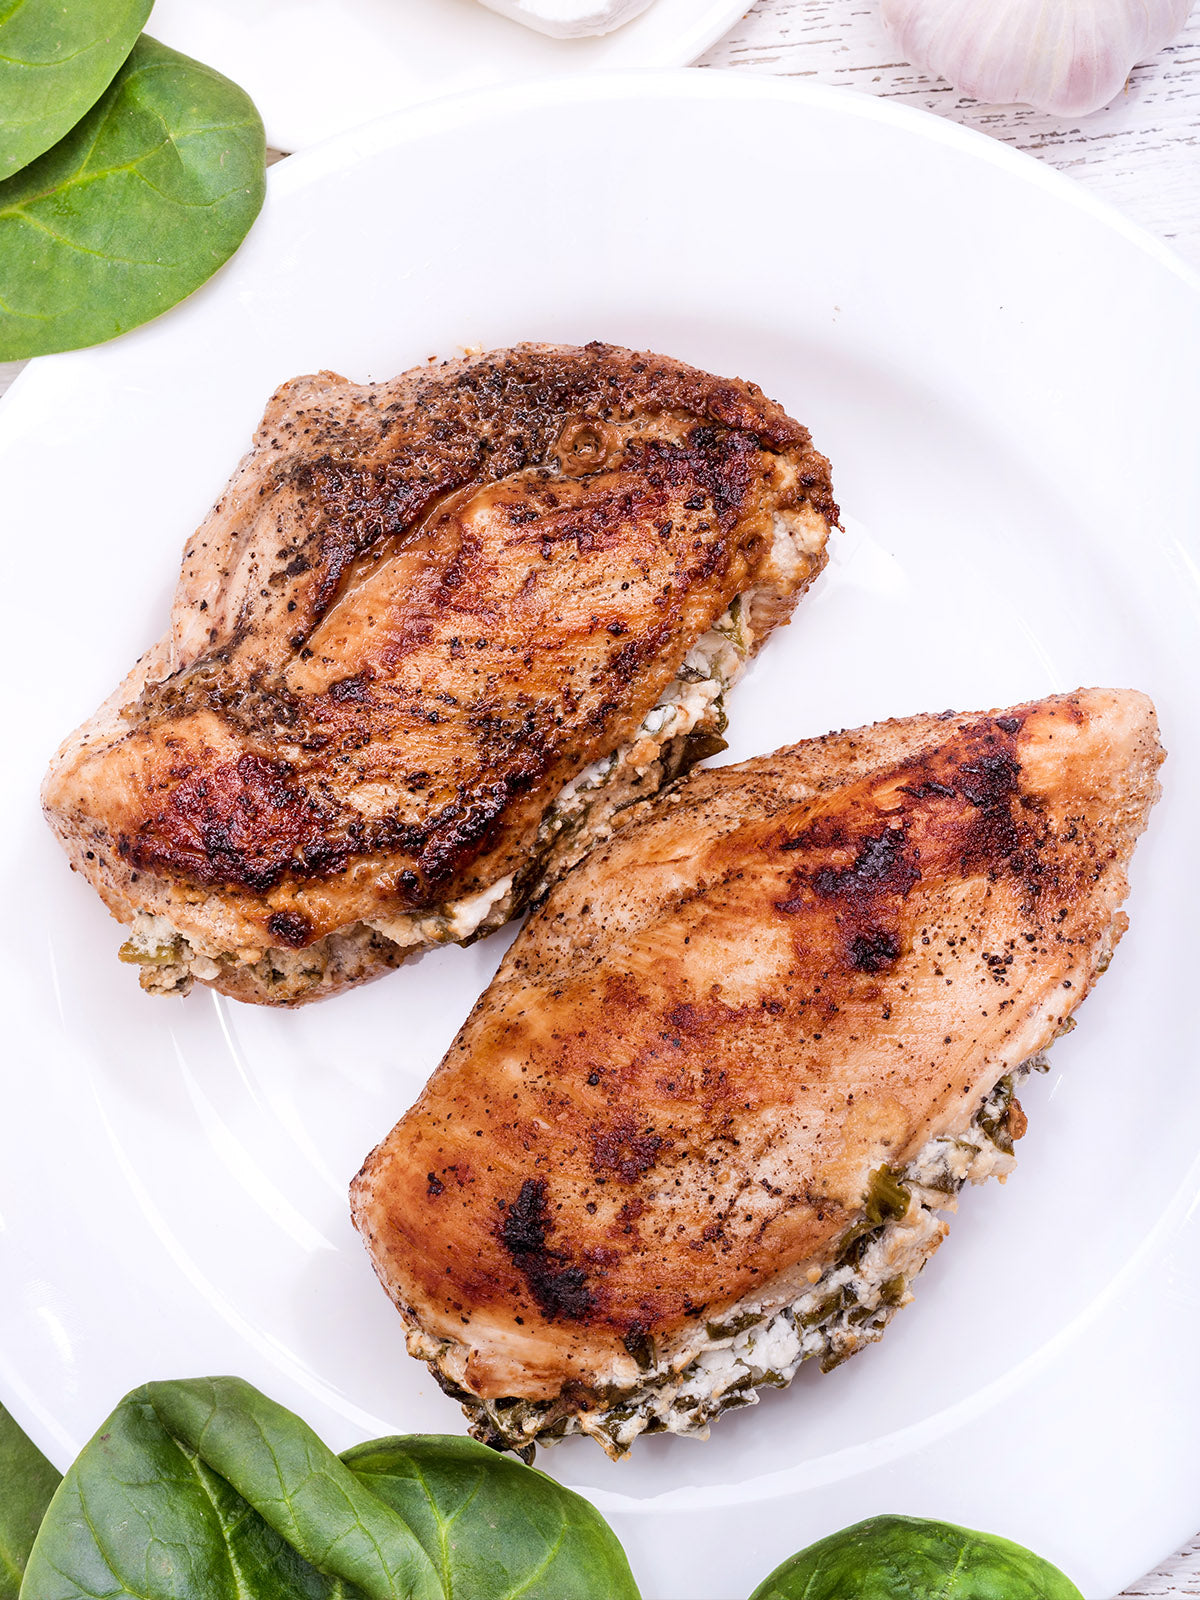 Fennel and Goat Cheese Stuffed Chicken Breasts